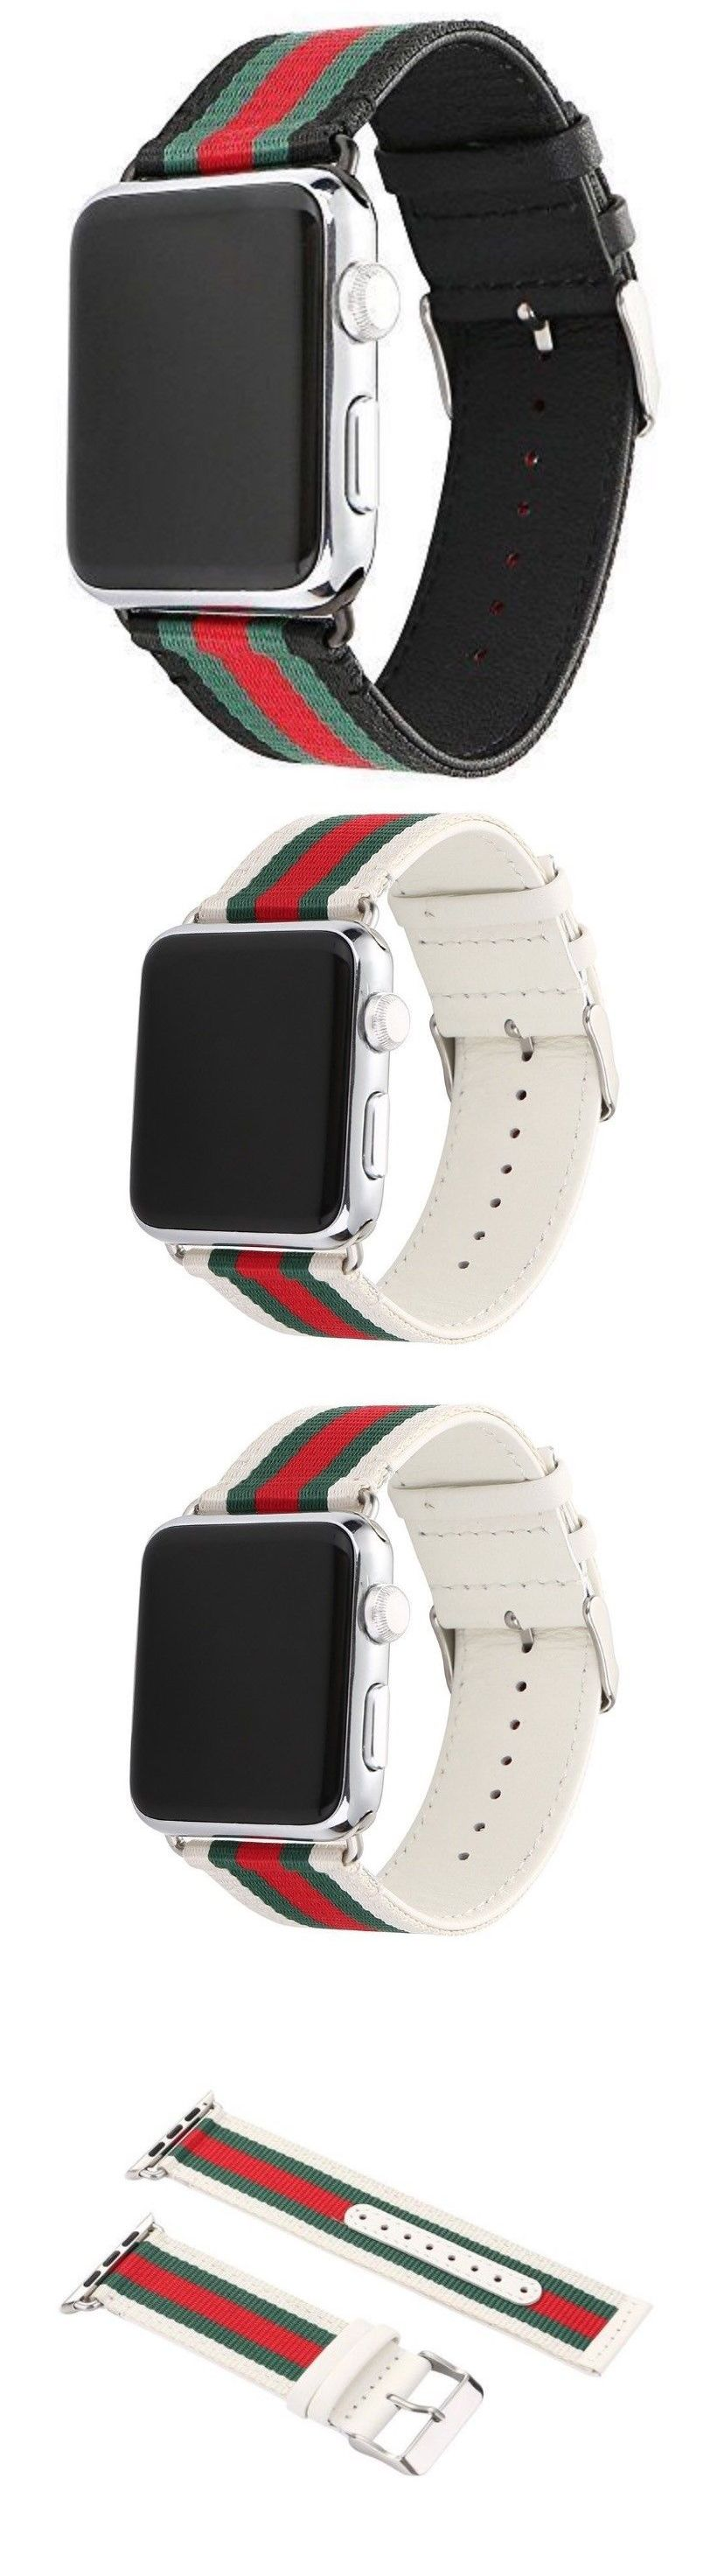 c9c37ddfccb Other Watch Parts and Tools 180246  Replacement Nylon Leather Stripe Sport  Band Strap For Apple Watch Iwatch -  BUY IT NOW ONLY   10.79 on eBay!